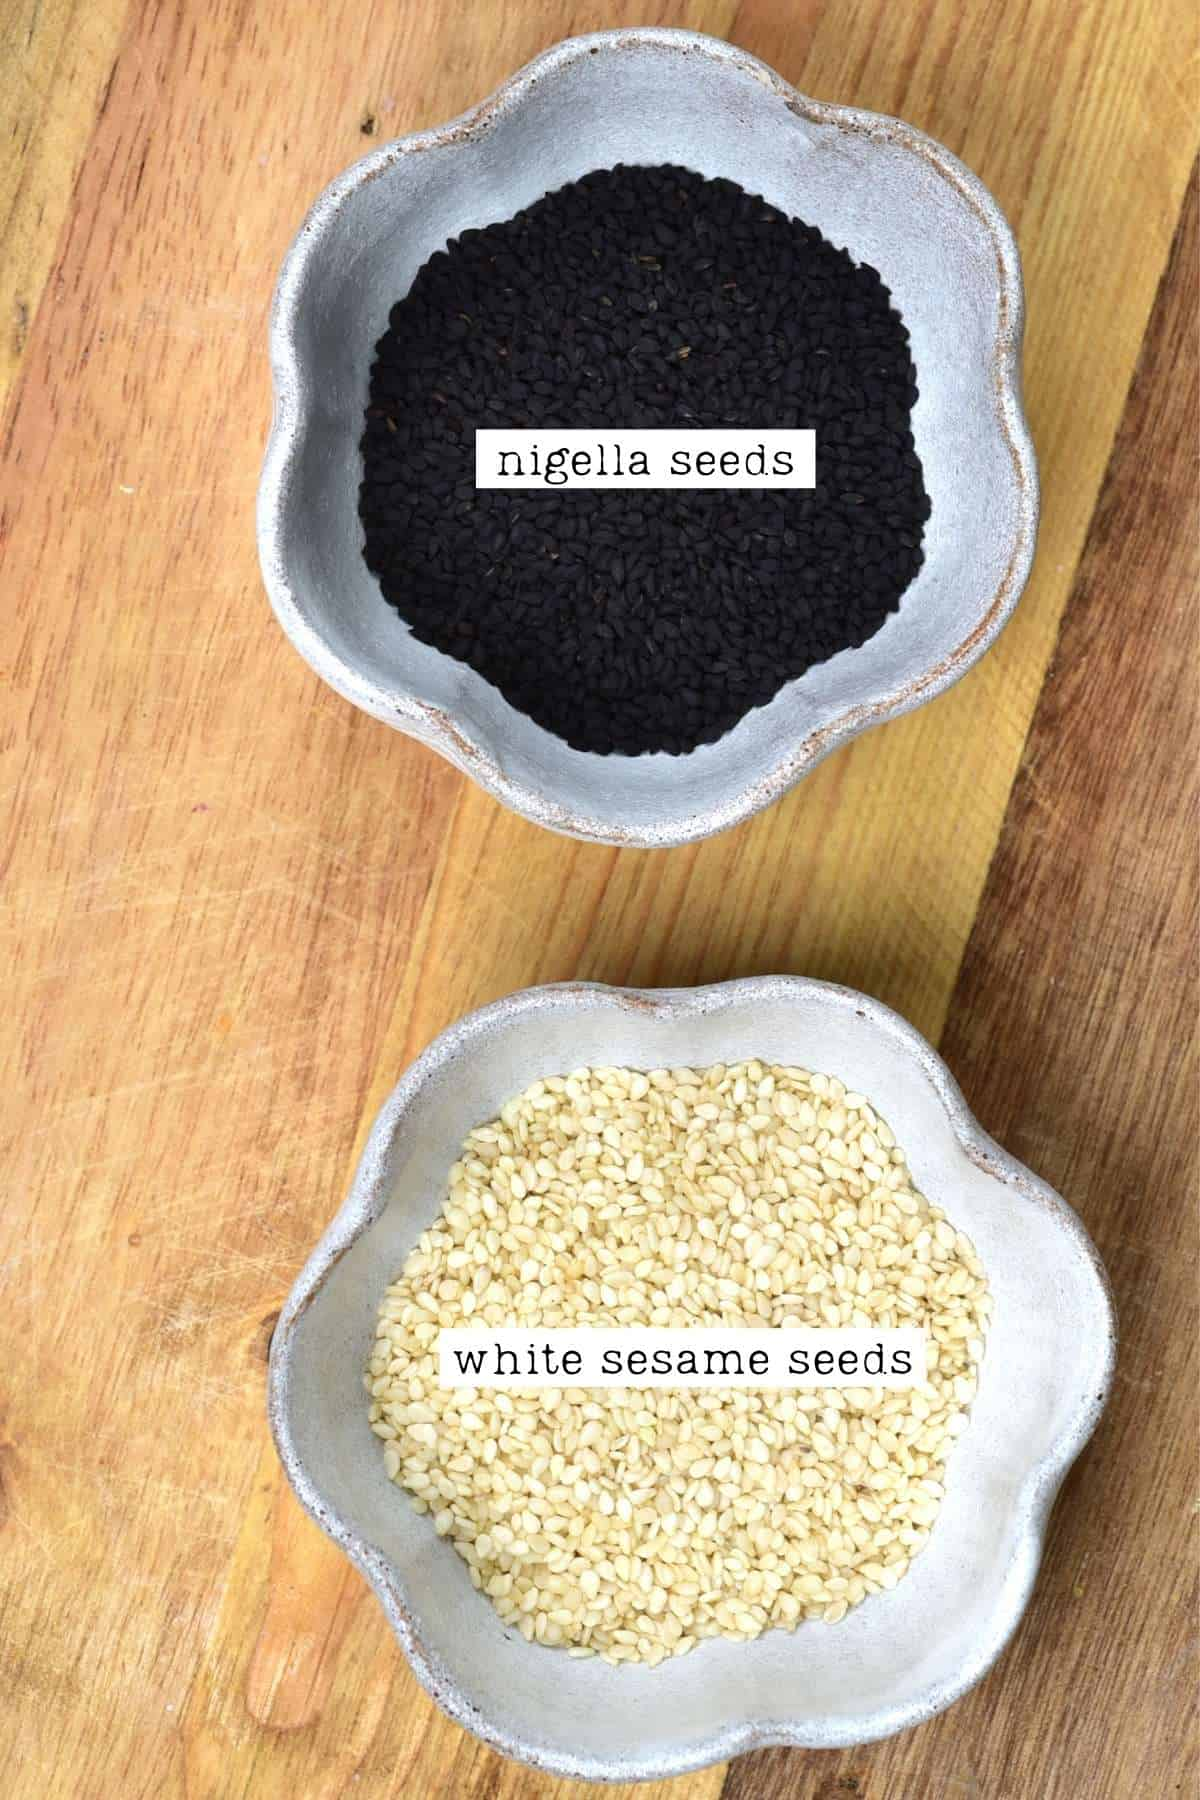 Nigella and white sesame seeds